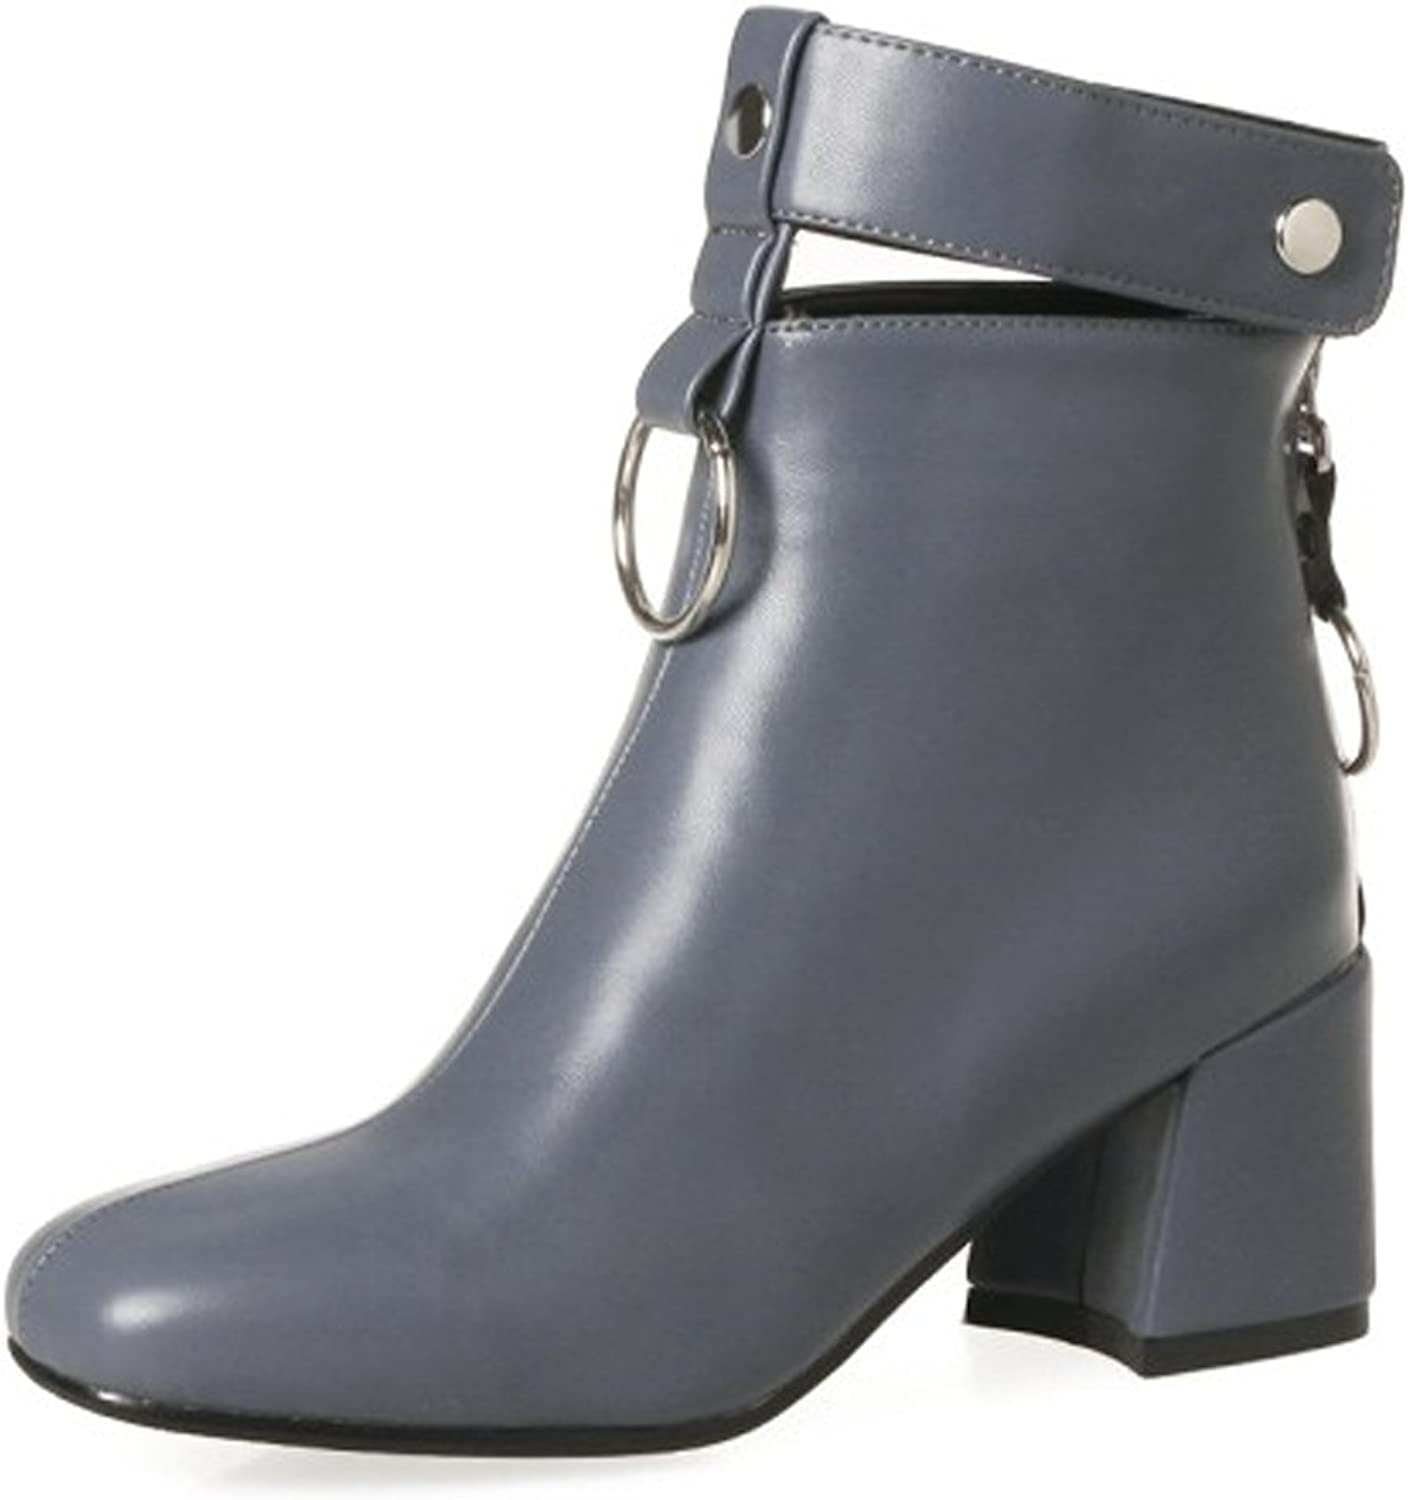 QZUnique Women Back Zip-Up Chunky Heel Ankle Booties Roound Toe Martin Boots with Duoit Decoration